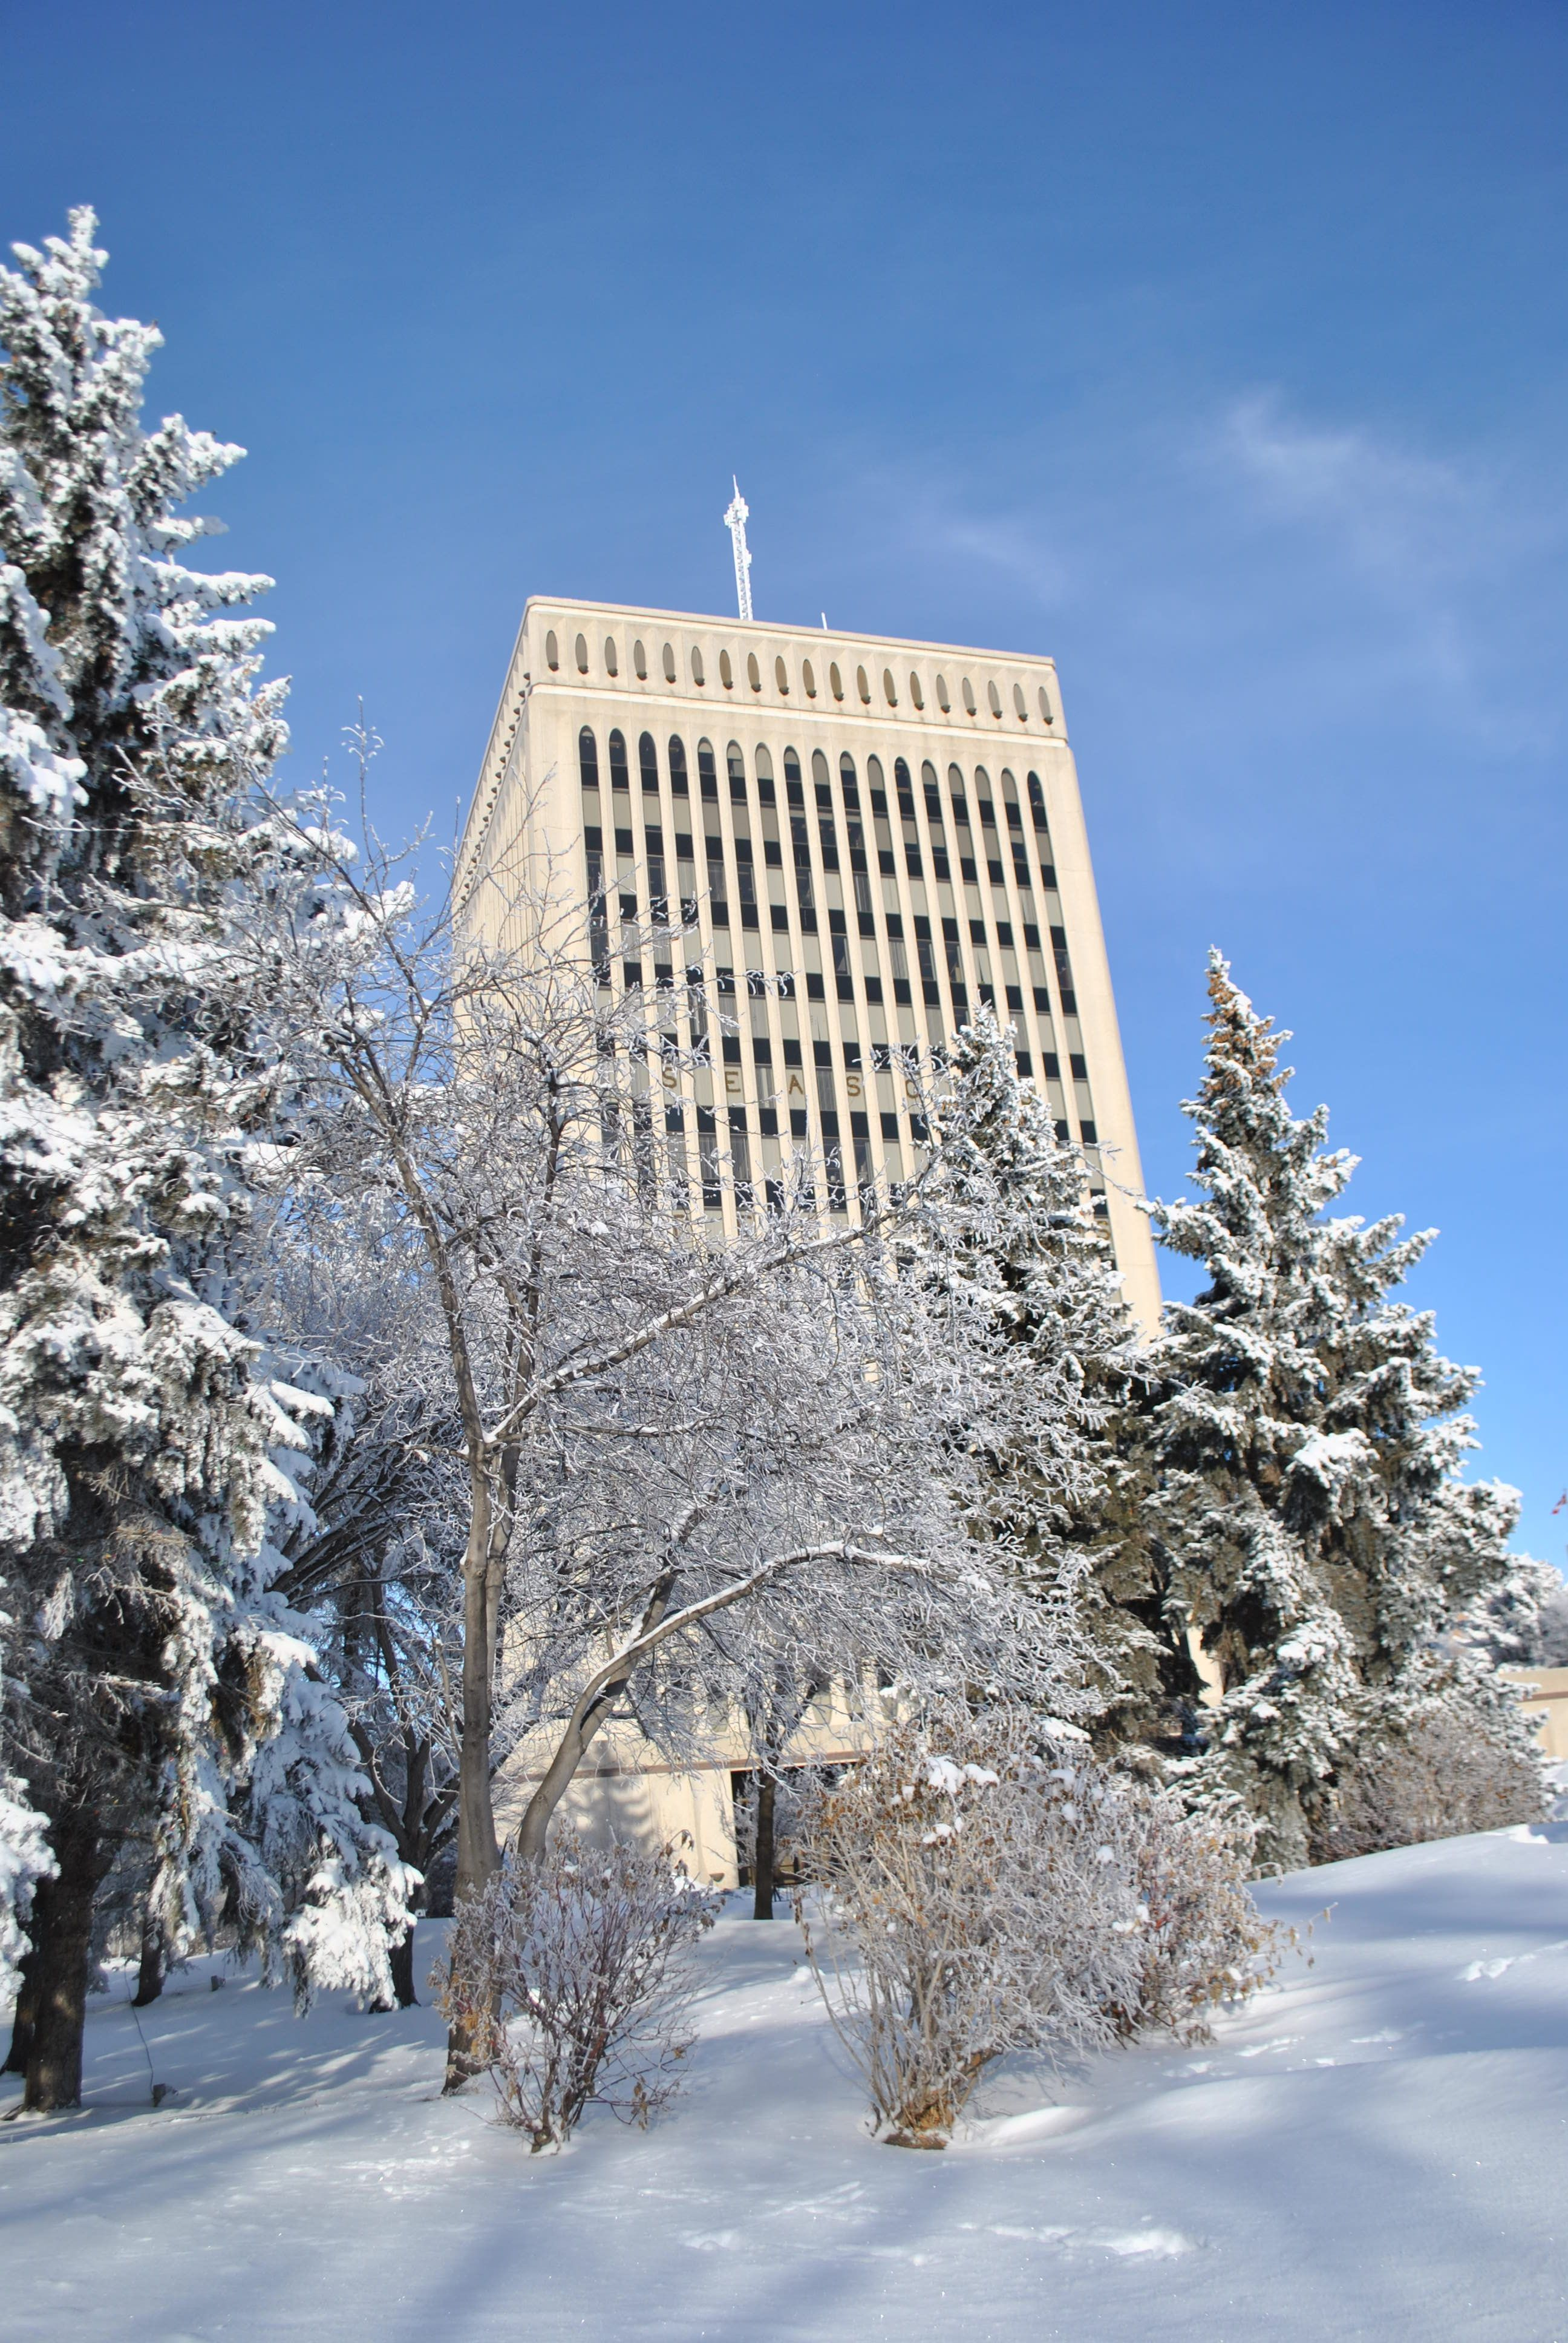 The City of Regina is ready to take on Mother Nature-  as winter draws near, City crews are working hard to keep our roads safe and clear for residents. Visit www.regina.ca for the City's snow plan, detailing our priority road clearing system and up-to-date snow clearing information. #yqr #cityofregina